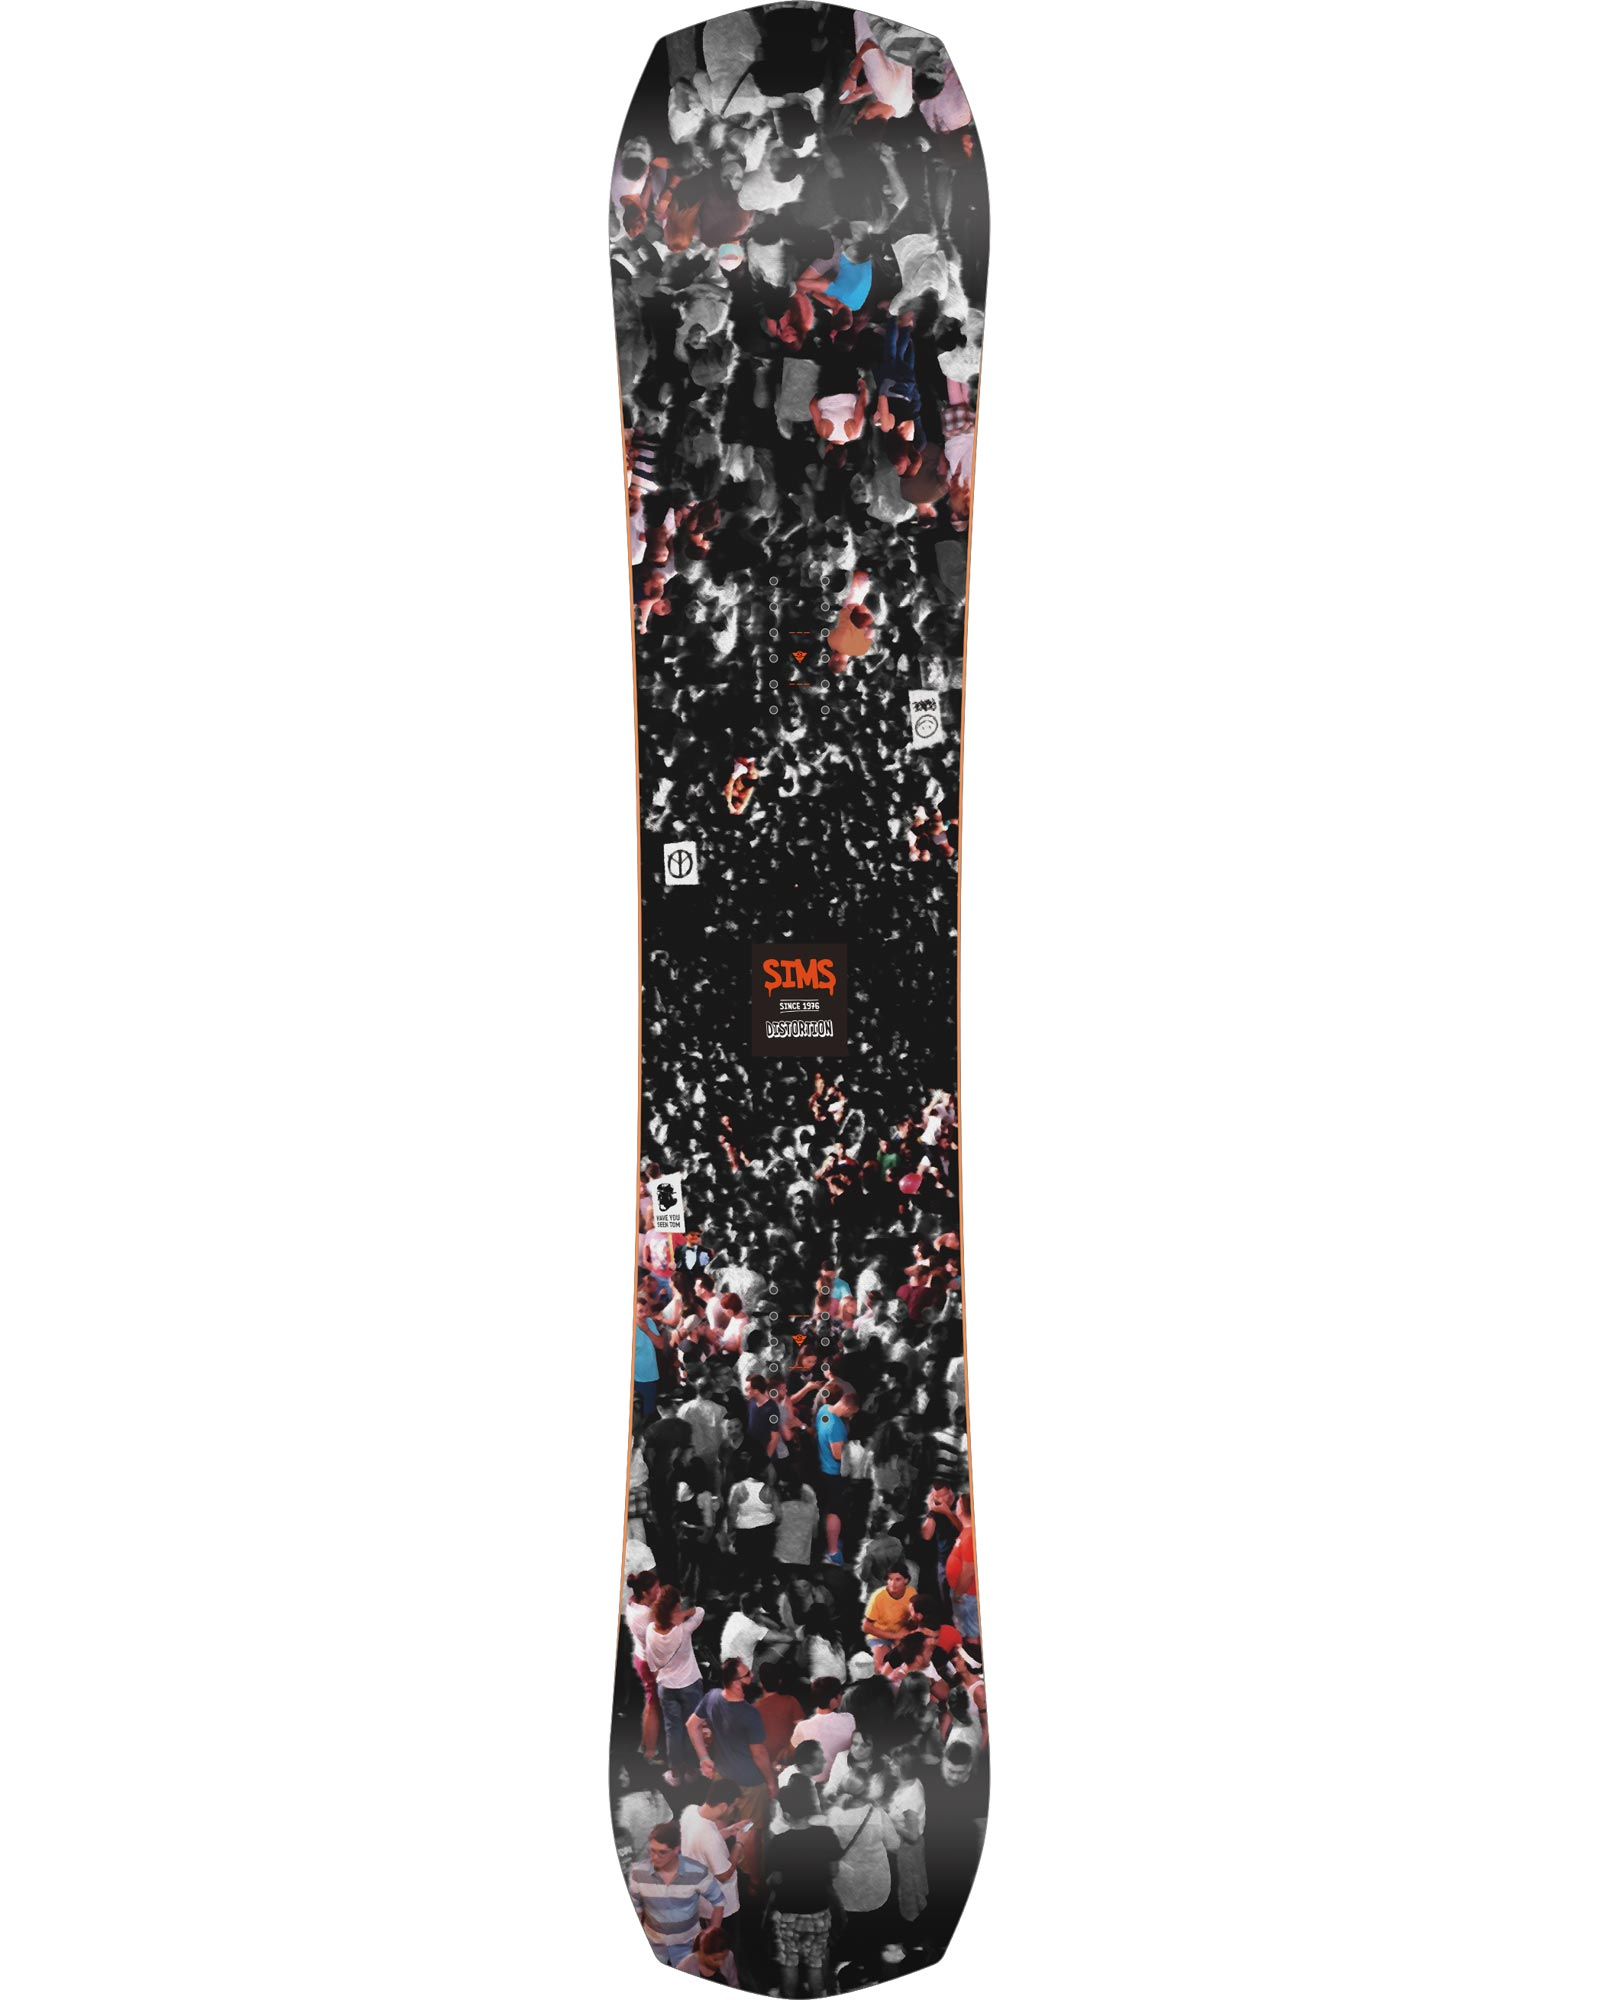 Sims Men's Distortion Snowboard 2020 / 2021 0